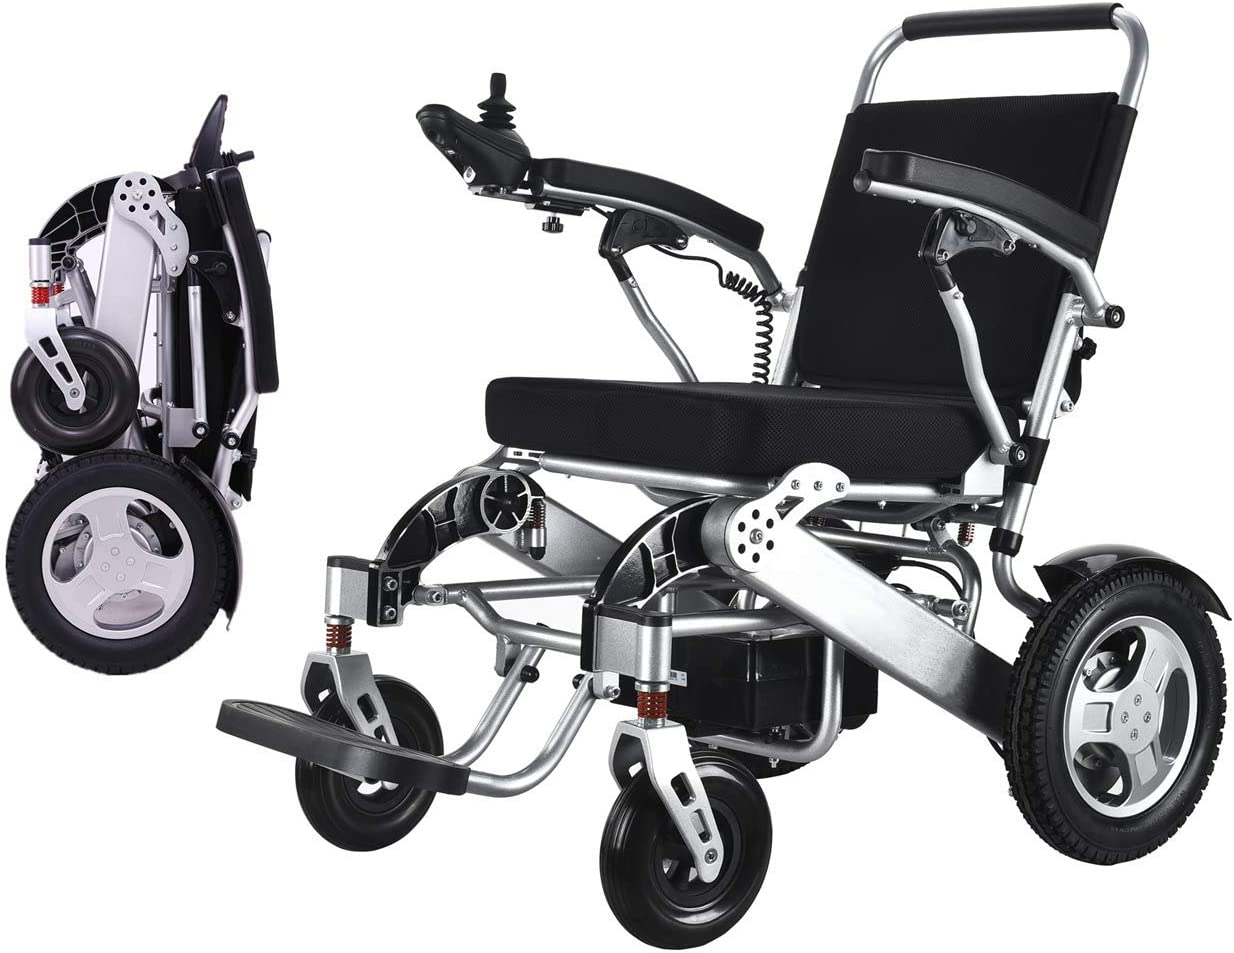 WISGING Folding Electric Powered Popular Max 77% OFF brand in the world Portable Lightweight Wheelchair